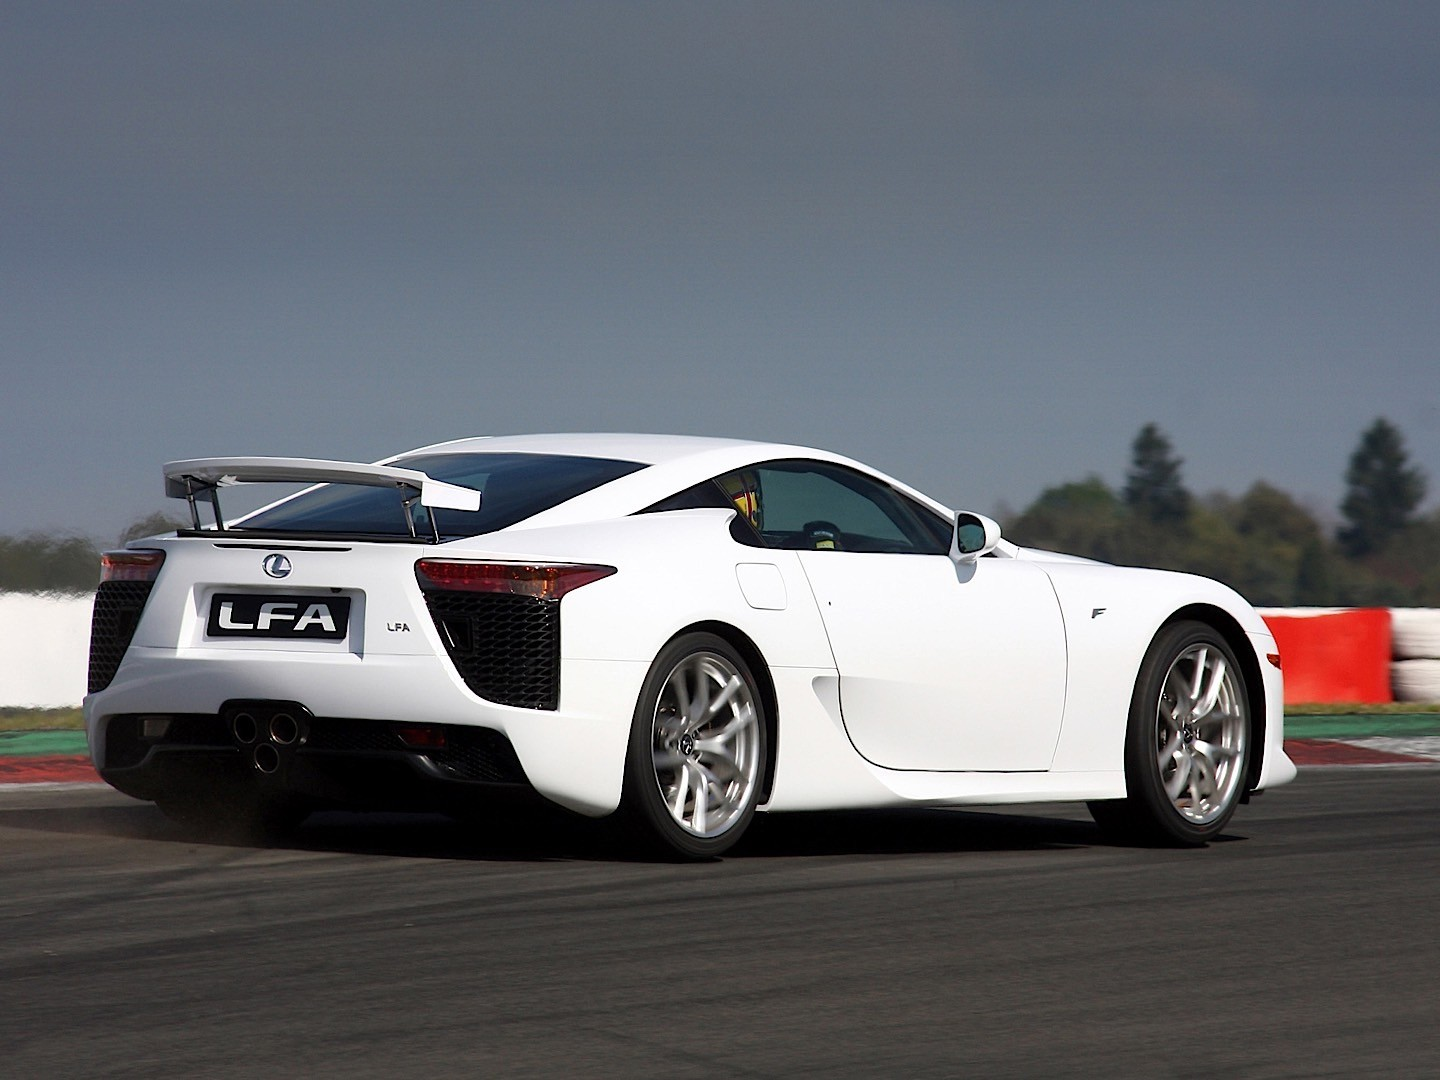 Acura Exotic Car >> LEXUS LFA specs - 2010, 2011, 2012, 2013 - autoevolution